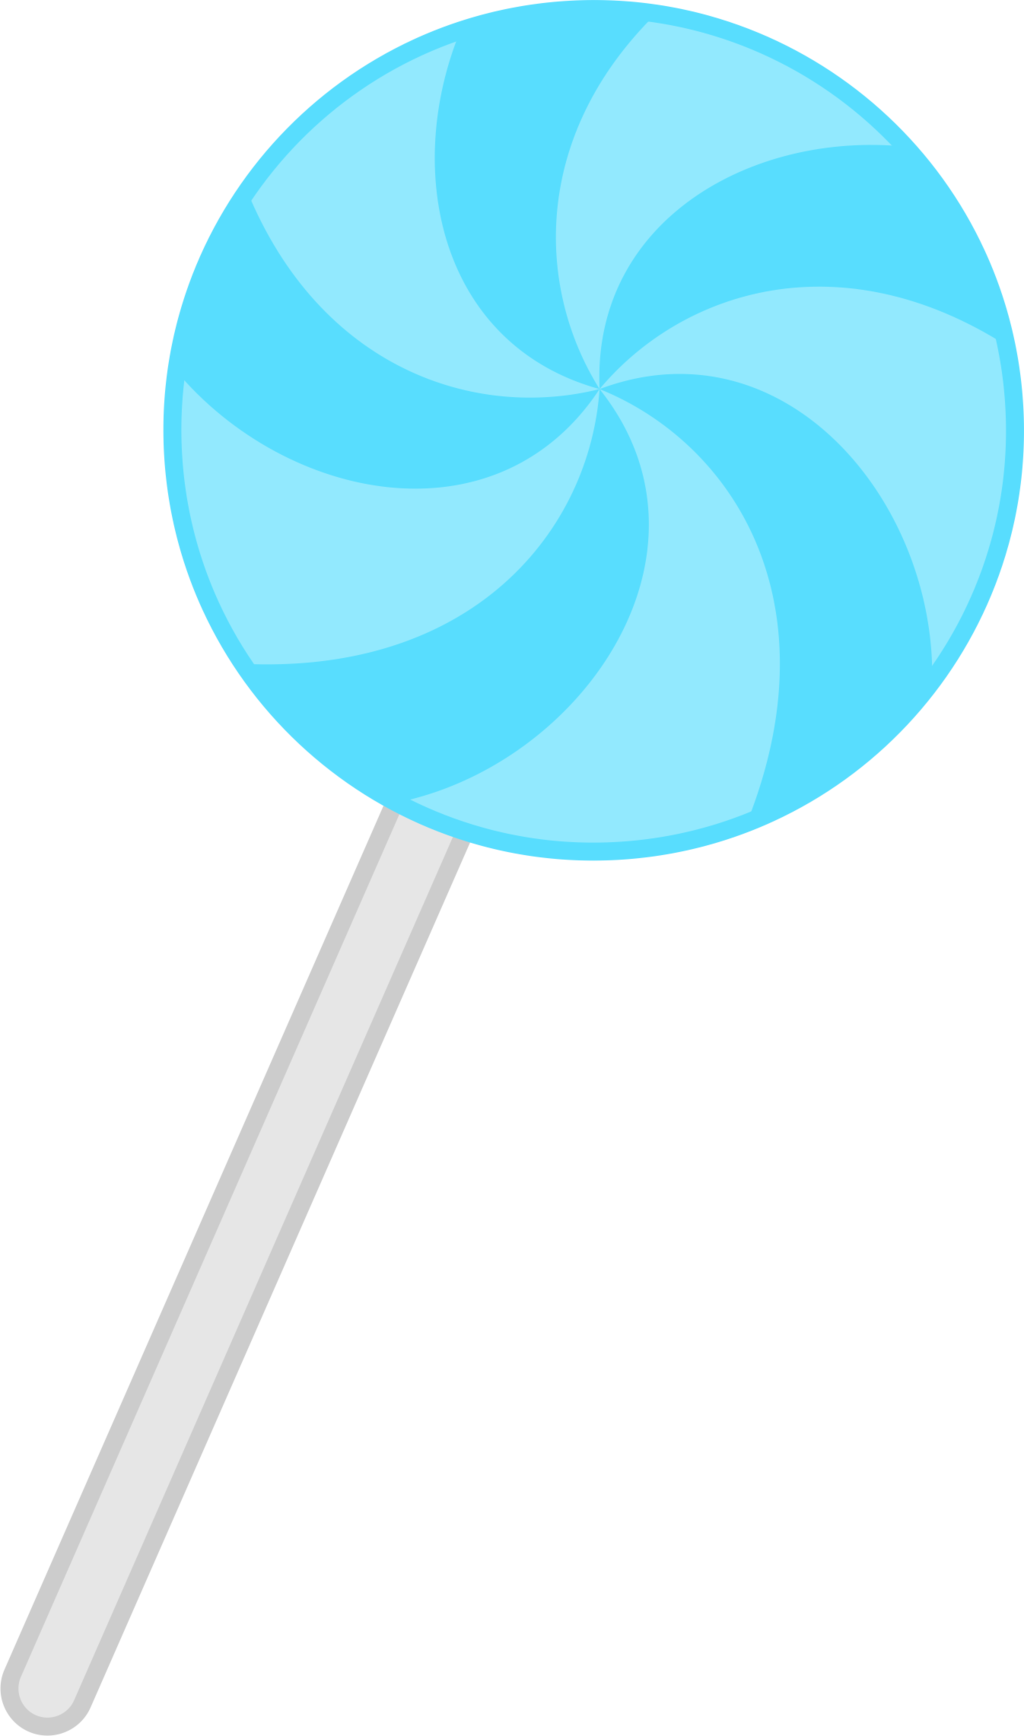 Lollipop clipart round thing. Png cheap with gallery